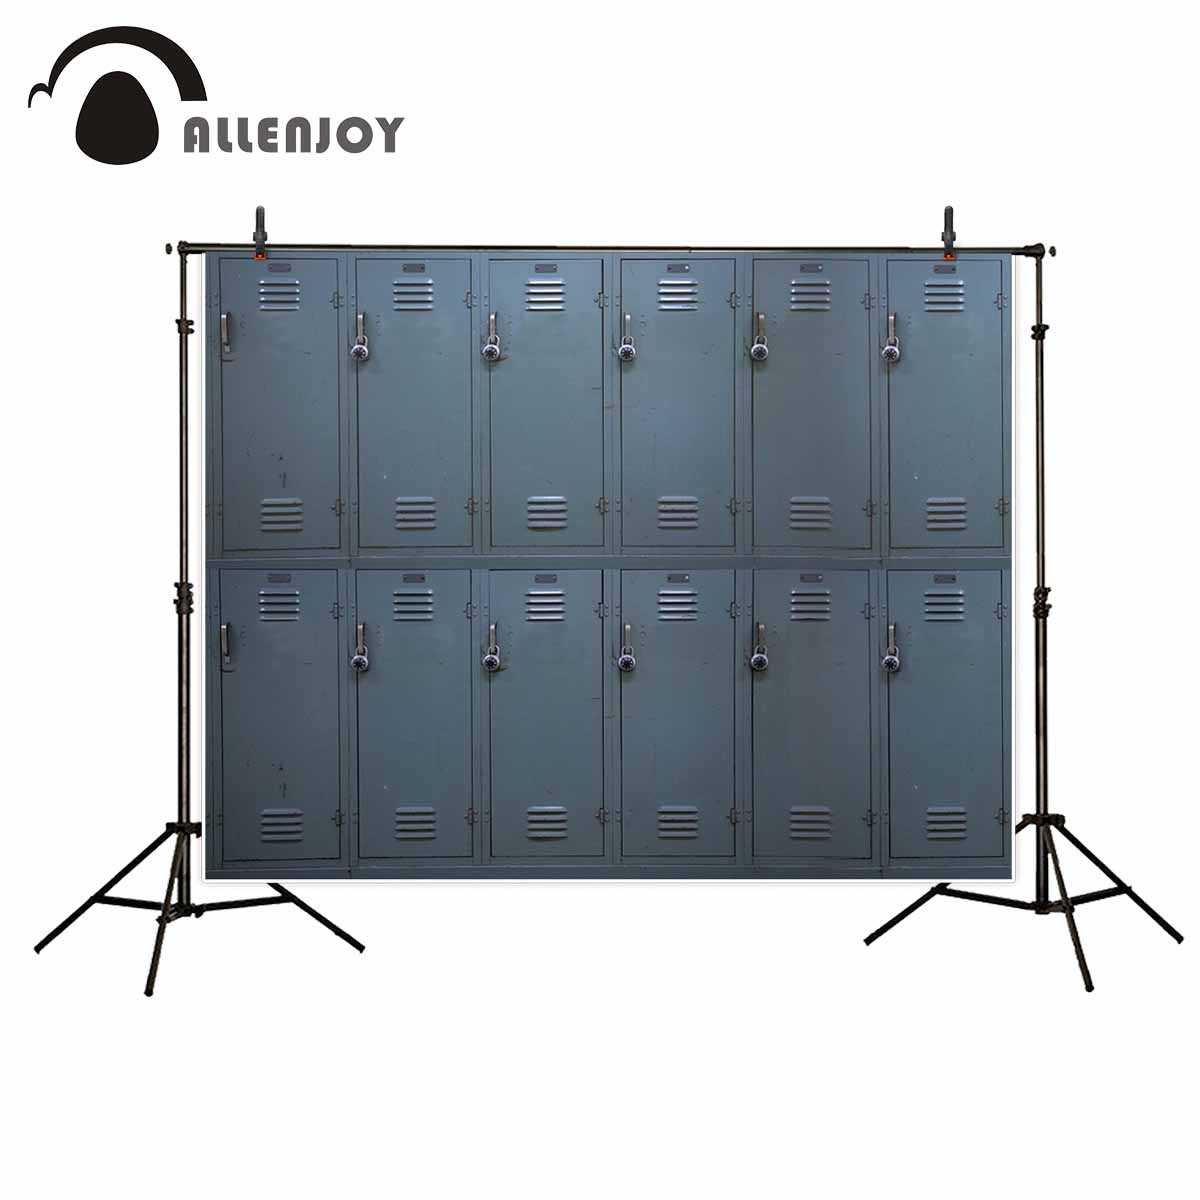 Allenjoy photography backdrops Locker background college school backgrounds for photo studio background cloths photography vinyl